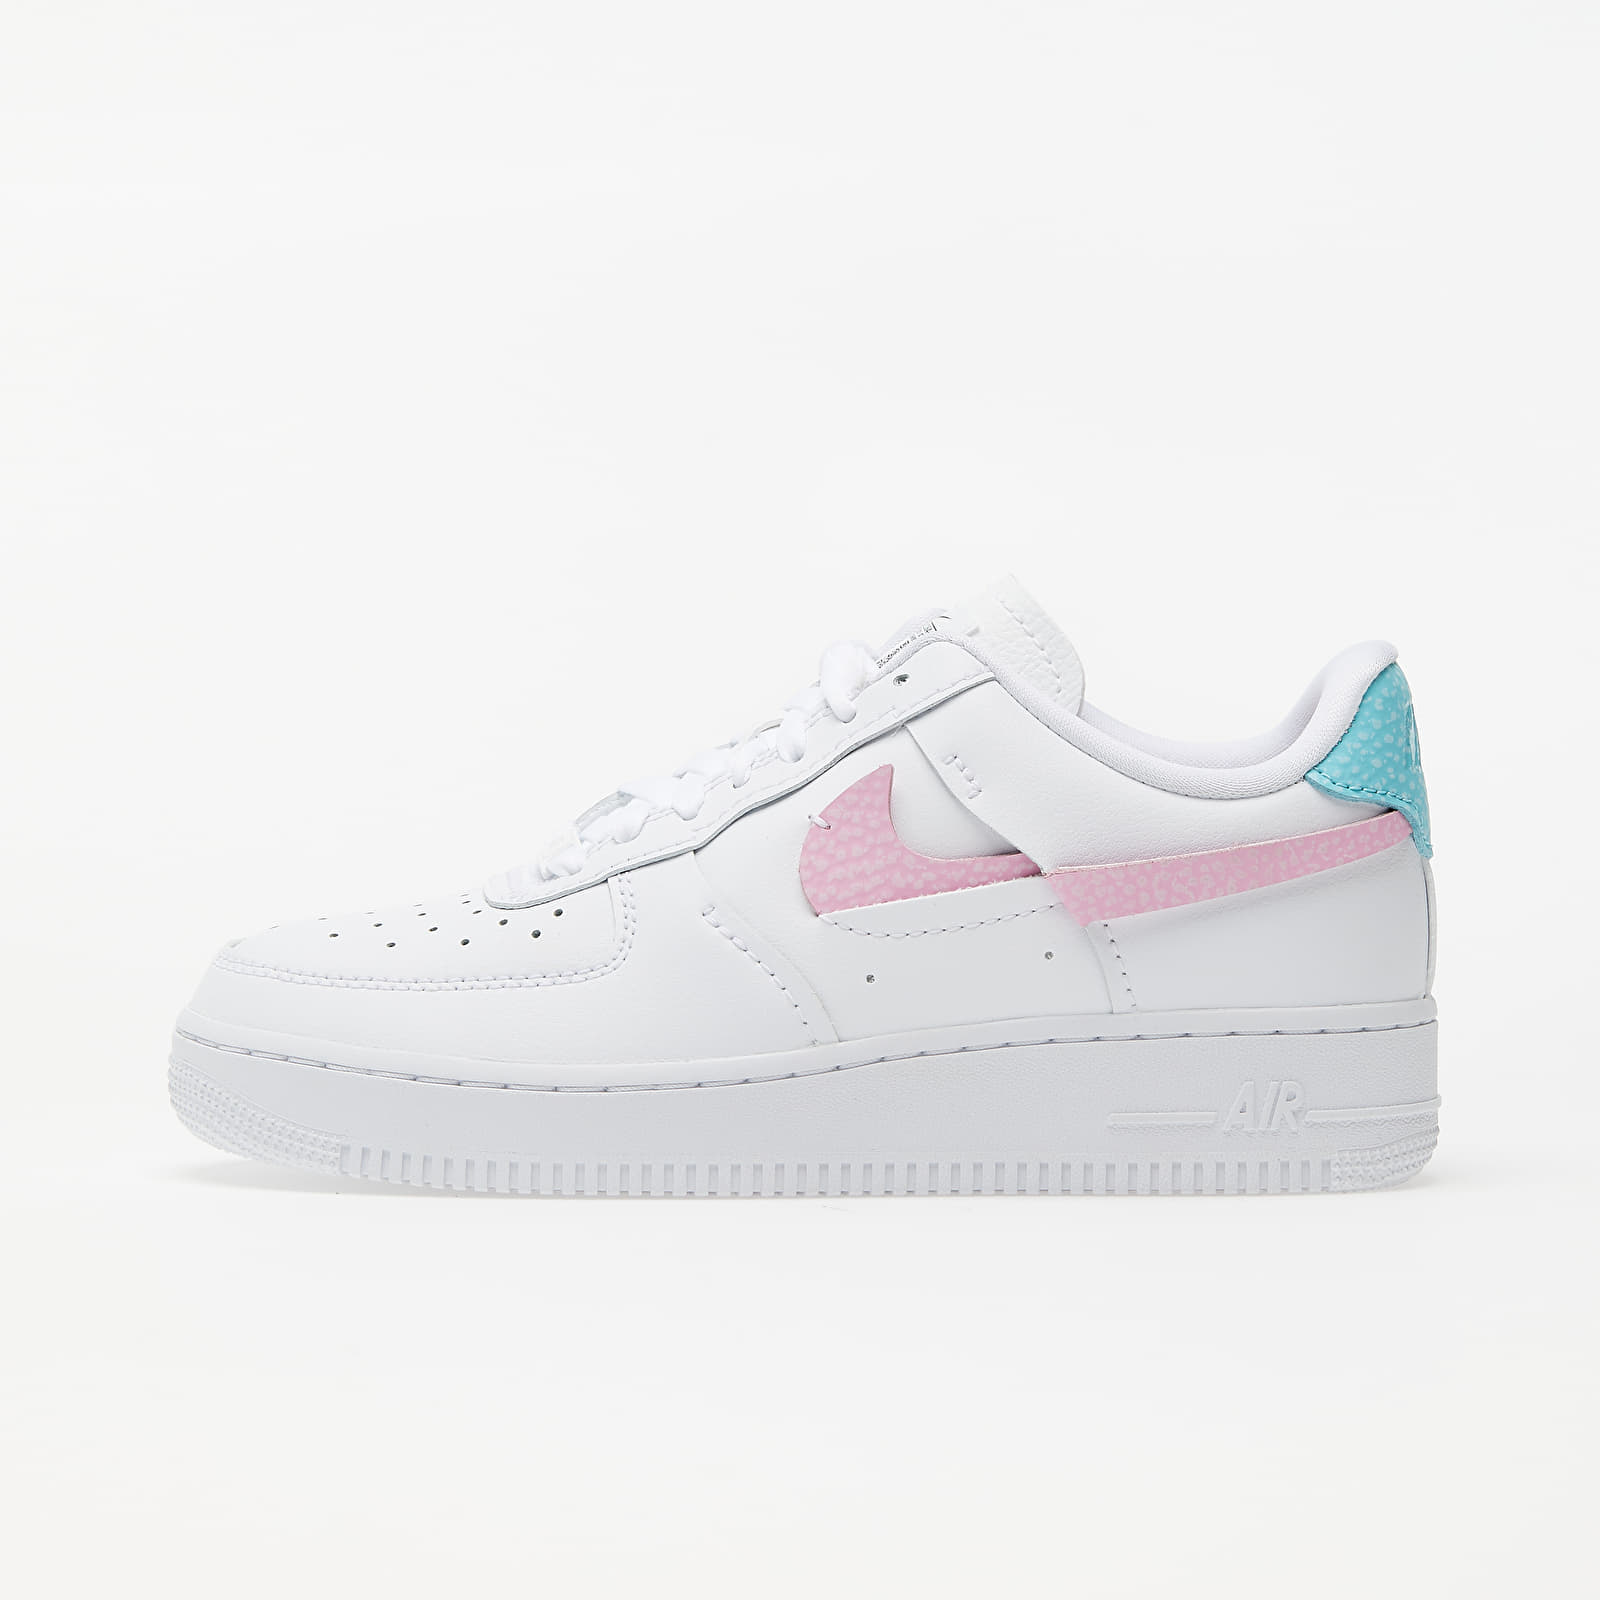 Women's shoes Nike Wmns Air Force 1 LXX White/ Bleached Aqua-Pink Rise